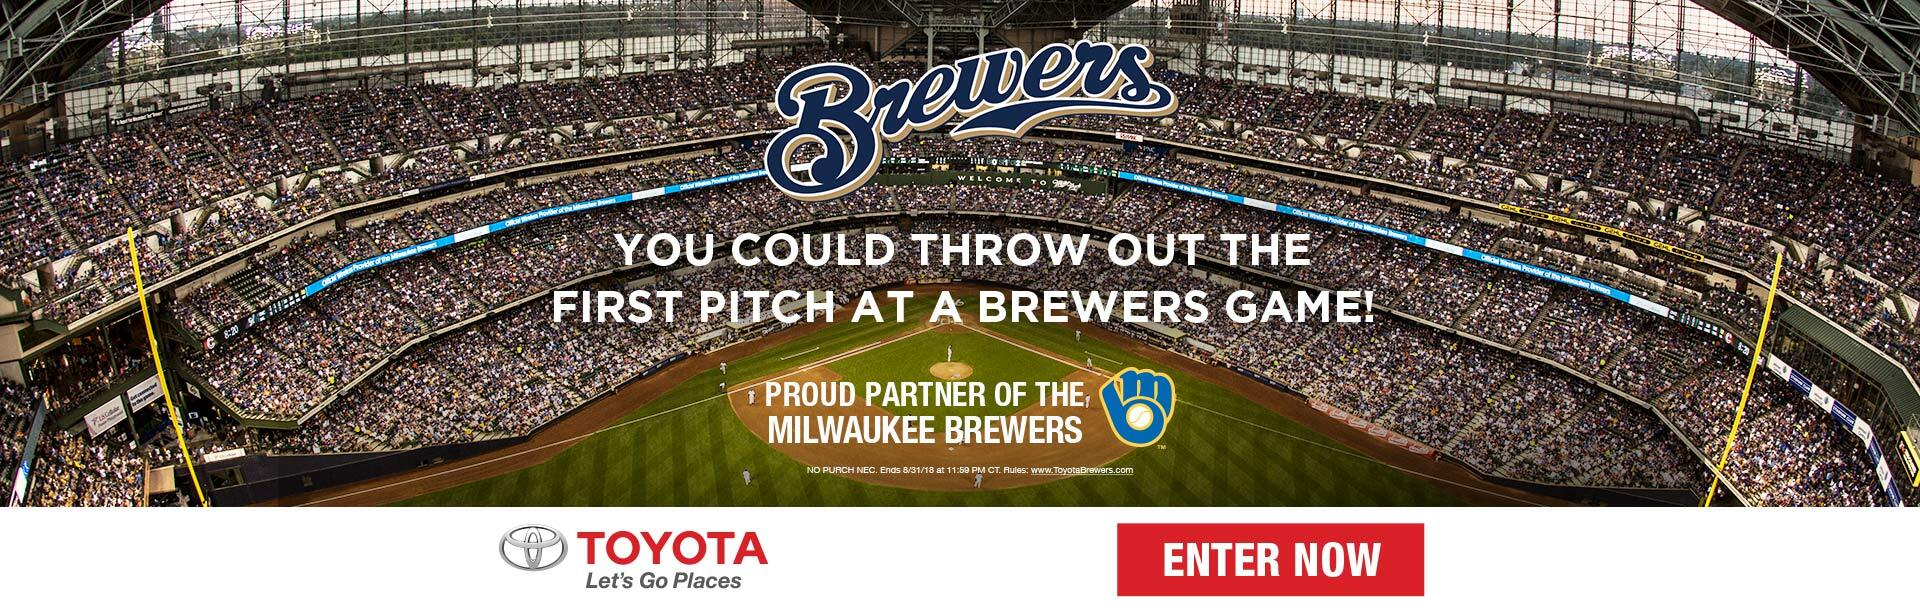 Brewers promo